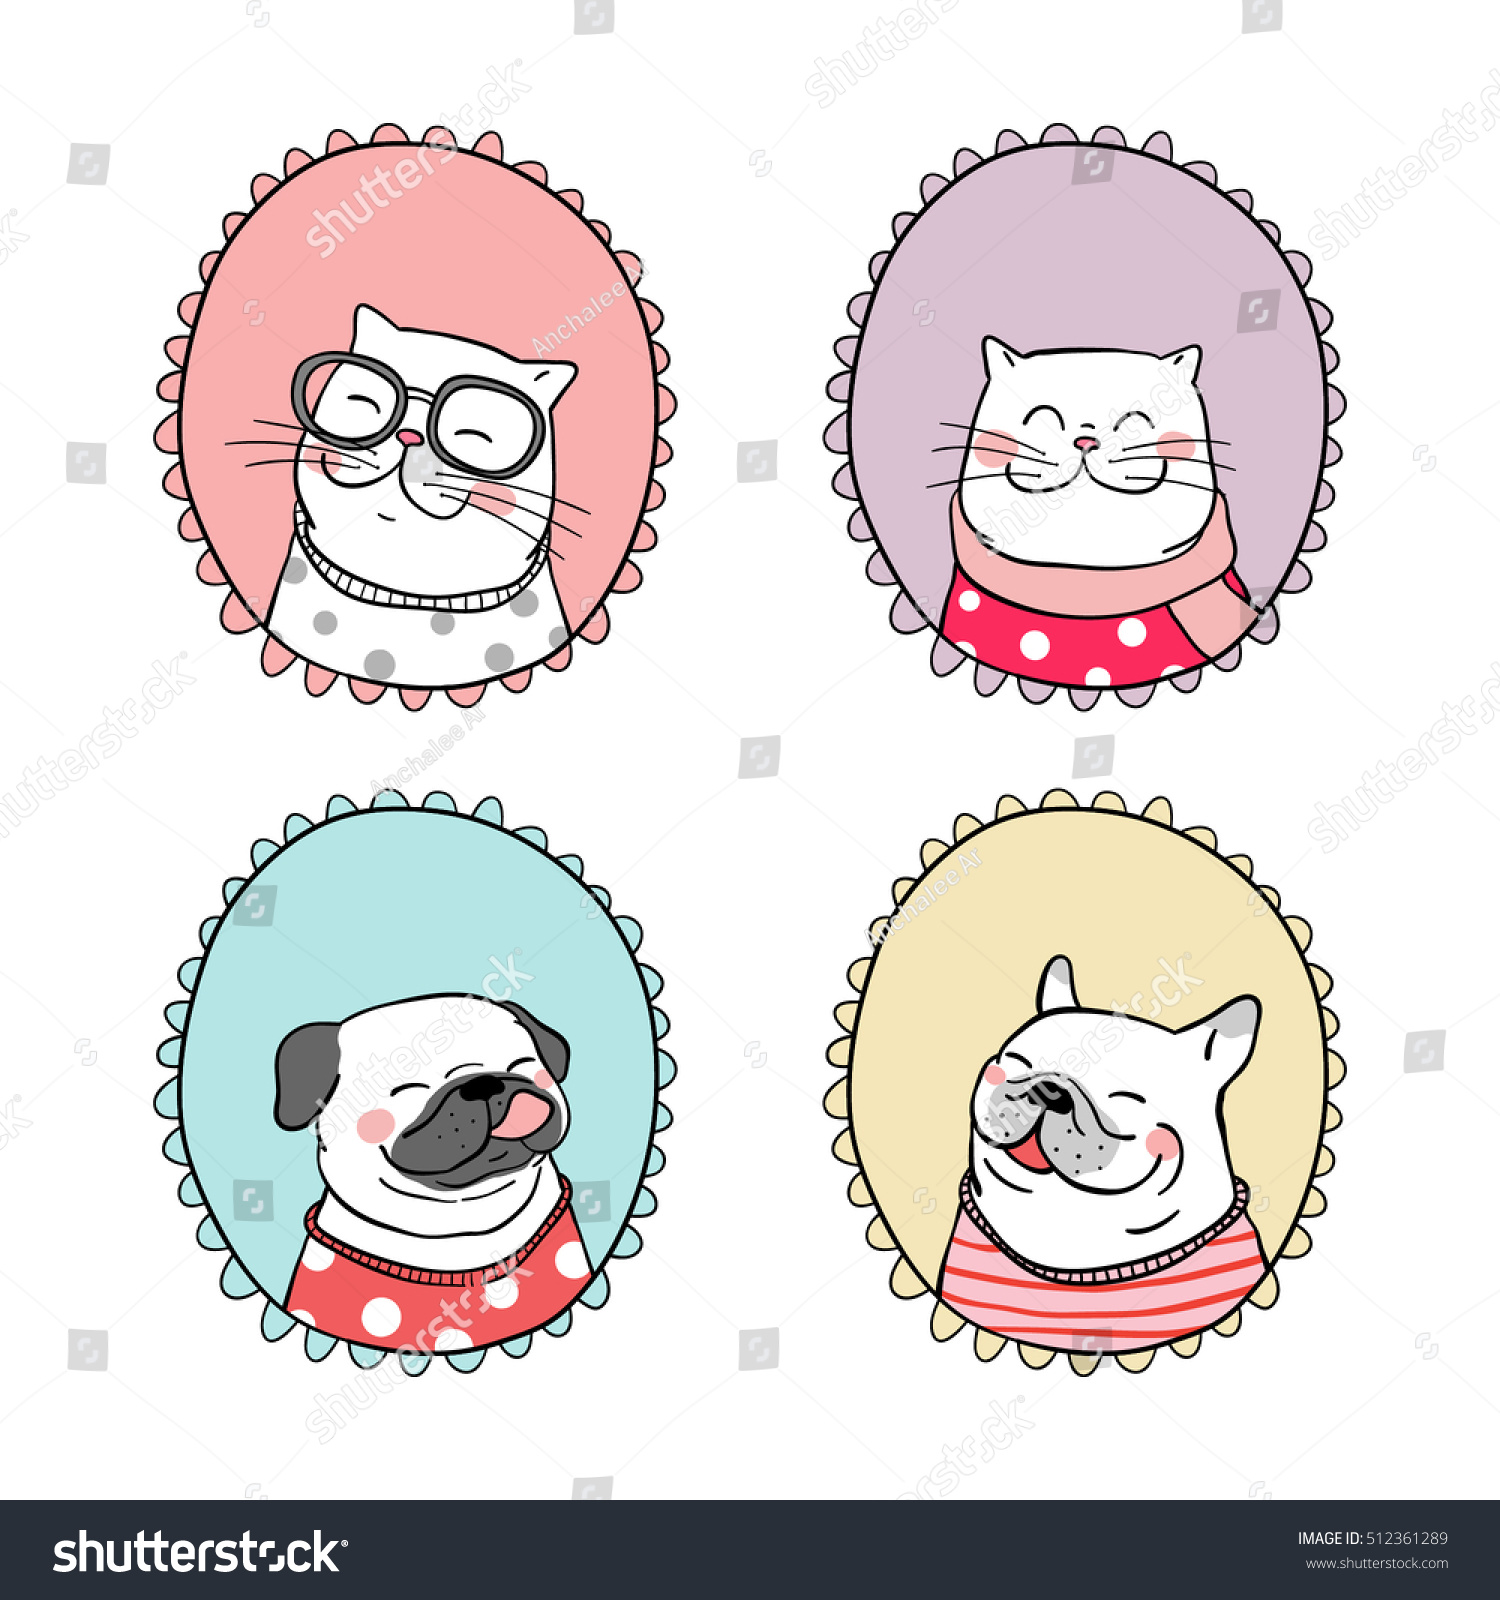 Cute portrait vector illustration of pug dog cat in sweet frame and beauty scarf sweater doodle style